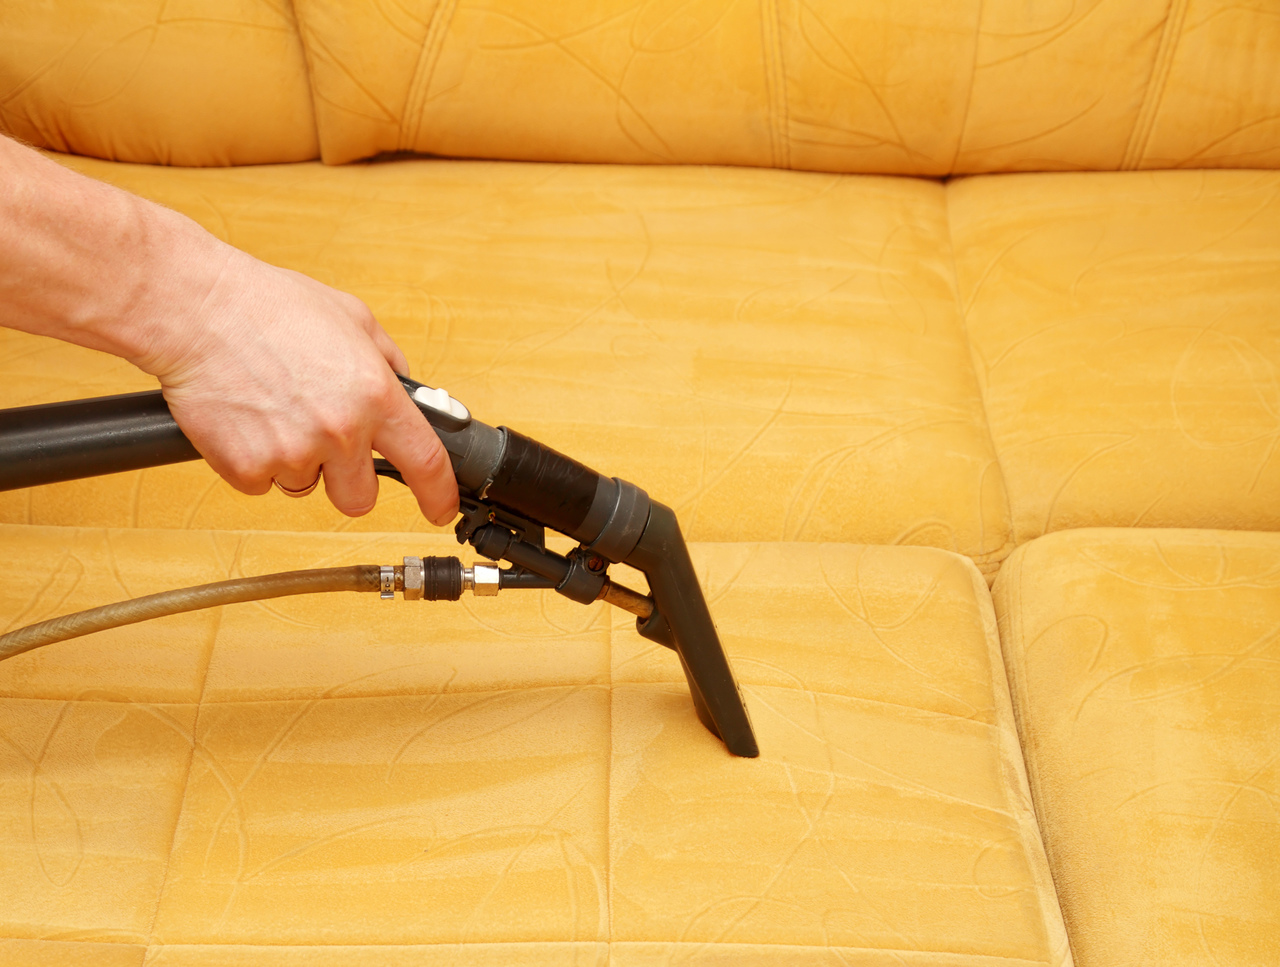 FCS Cleaning Services covers upholstery cleaning and soil protection in Auckland